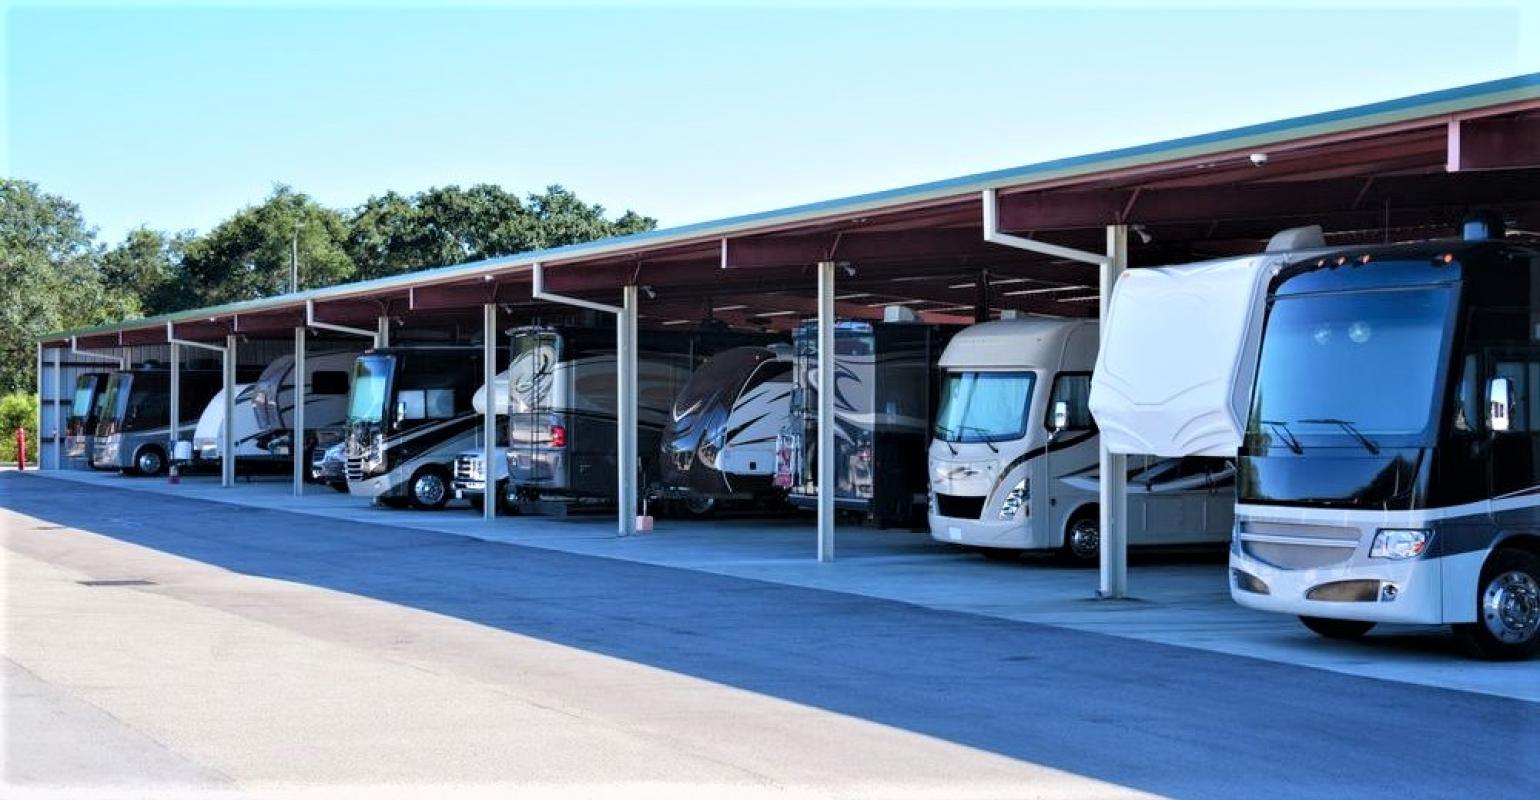 Building Boat And Rv Storage Considerations For Unit Types And More Inside Self Storage